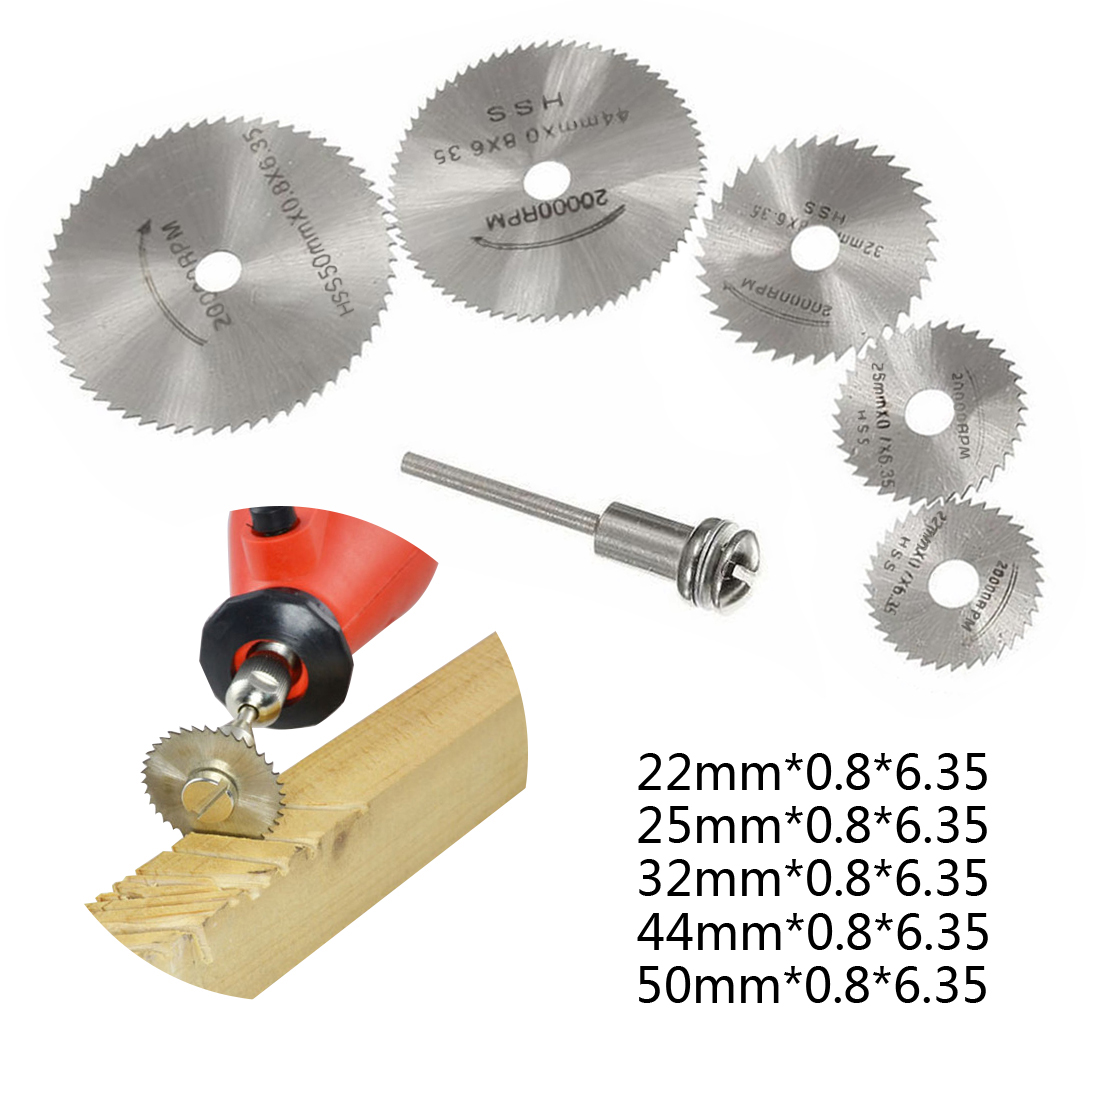 Drill Dremel Accessories HSS 1PC Mini Circular Saw Blades Power Tools Wood Cutting Disc Grinding Wheel Set For Rotary Tools